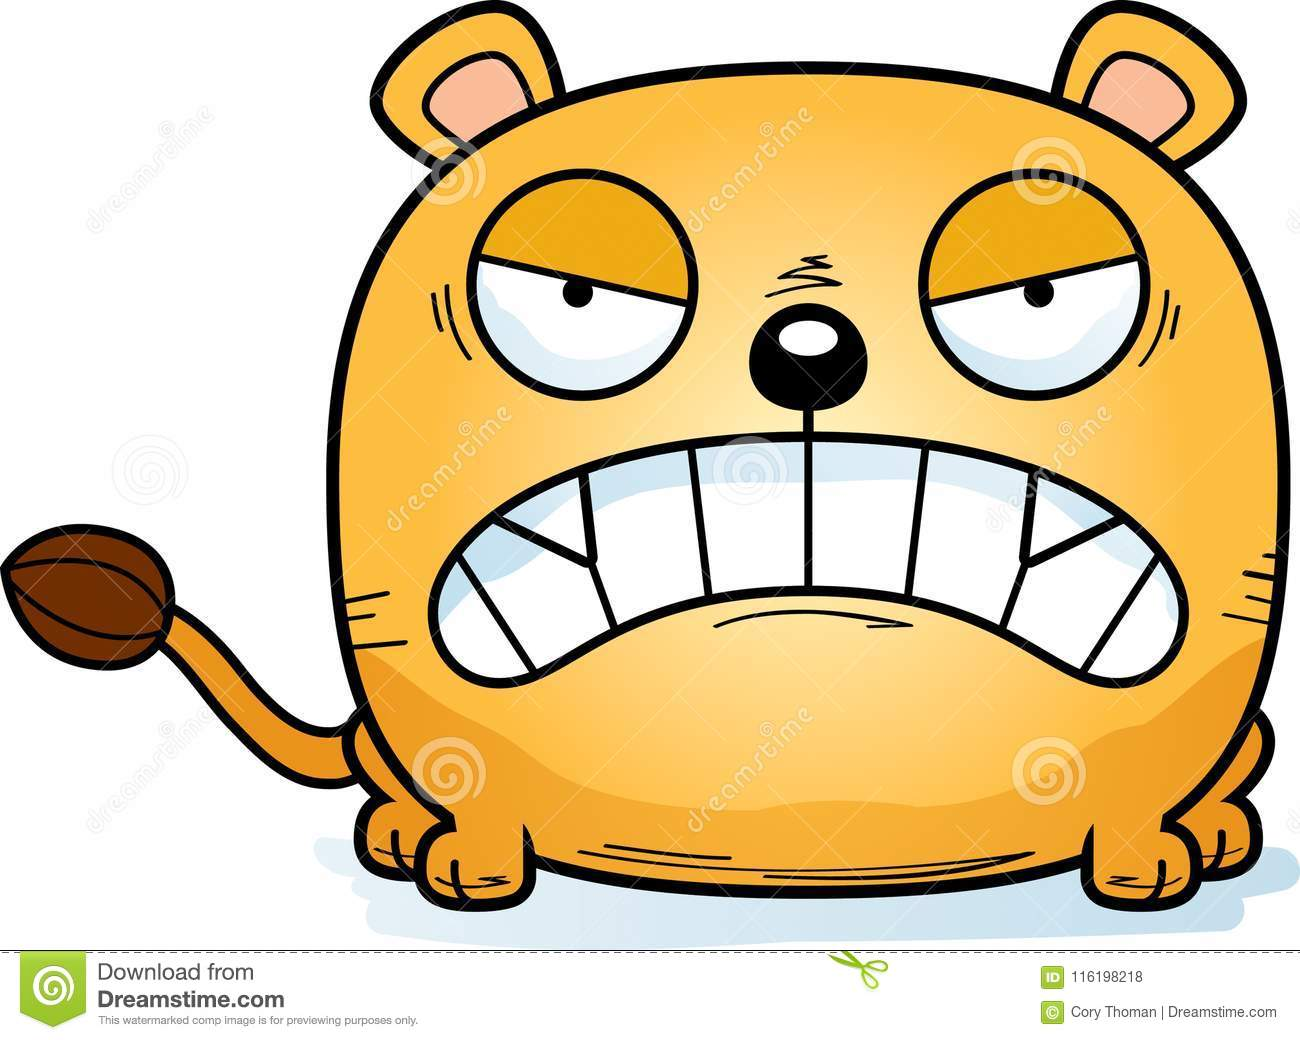 hight resolution of a cartoon illustration of a lioness cub with an angry expression